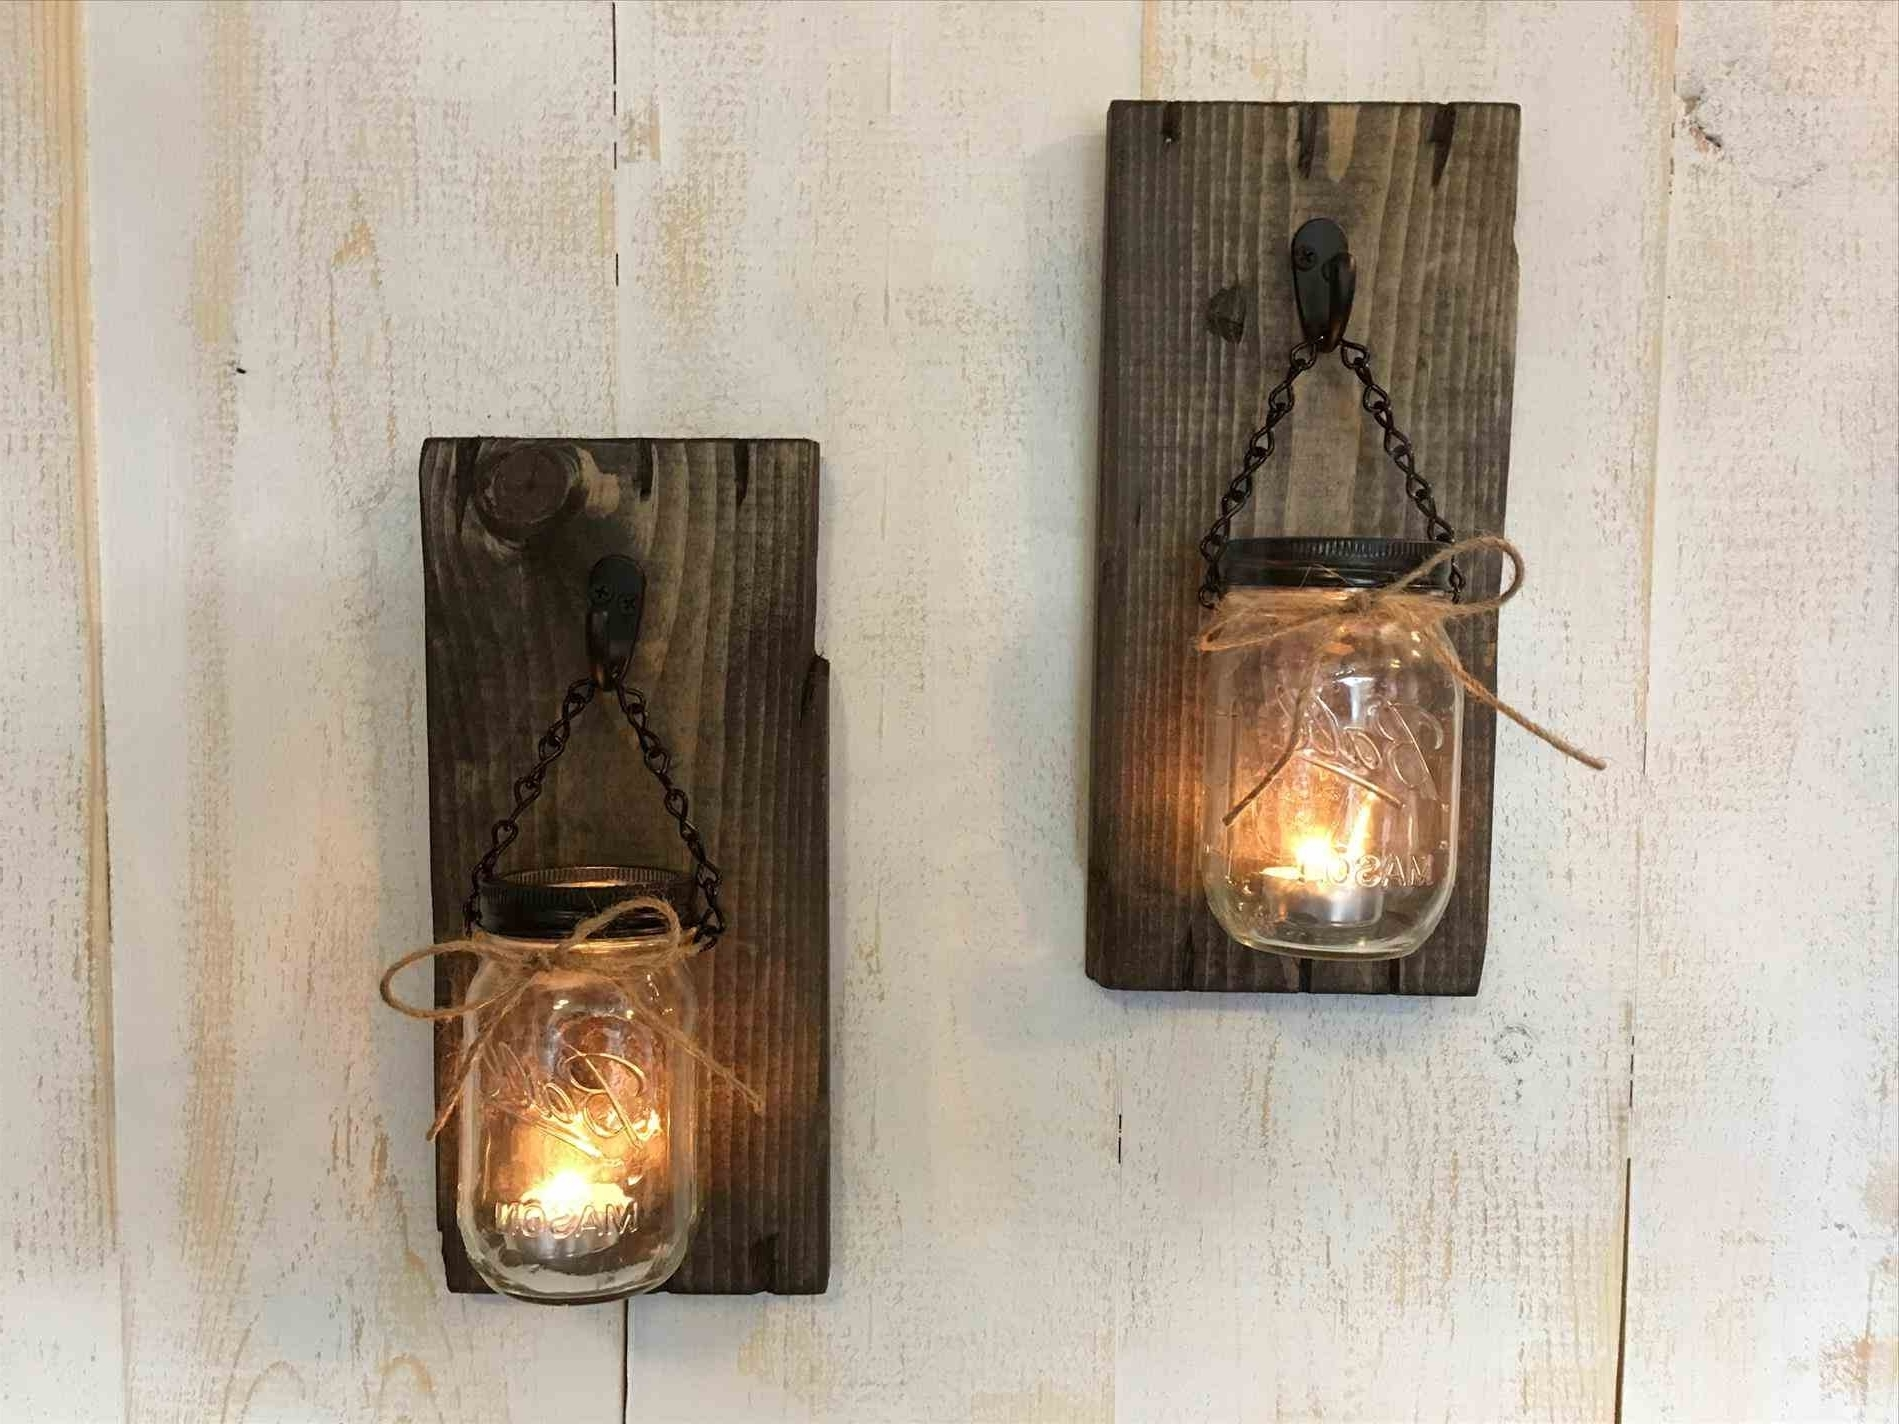 Wall Mounted Candle Chandeliers In Most Current Rustic Candle Sconces Inspect Home Within Rustic Candle Wall Sconces (View 14 of 20)